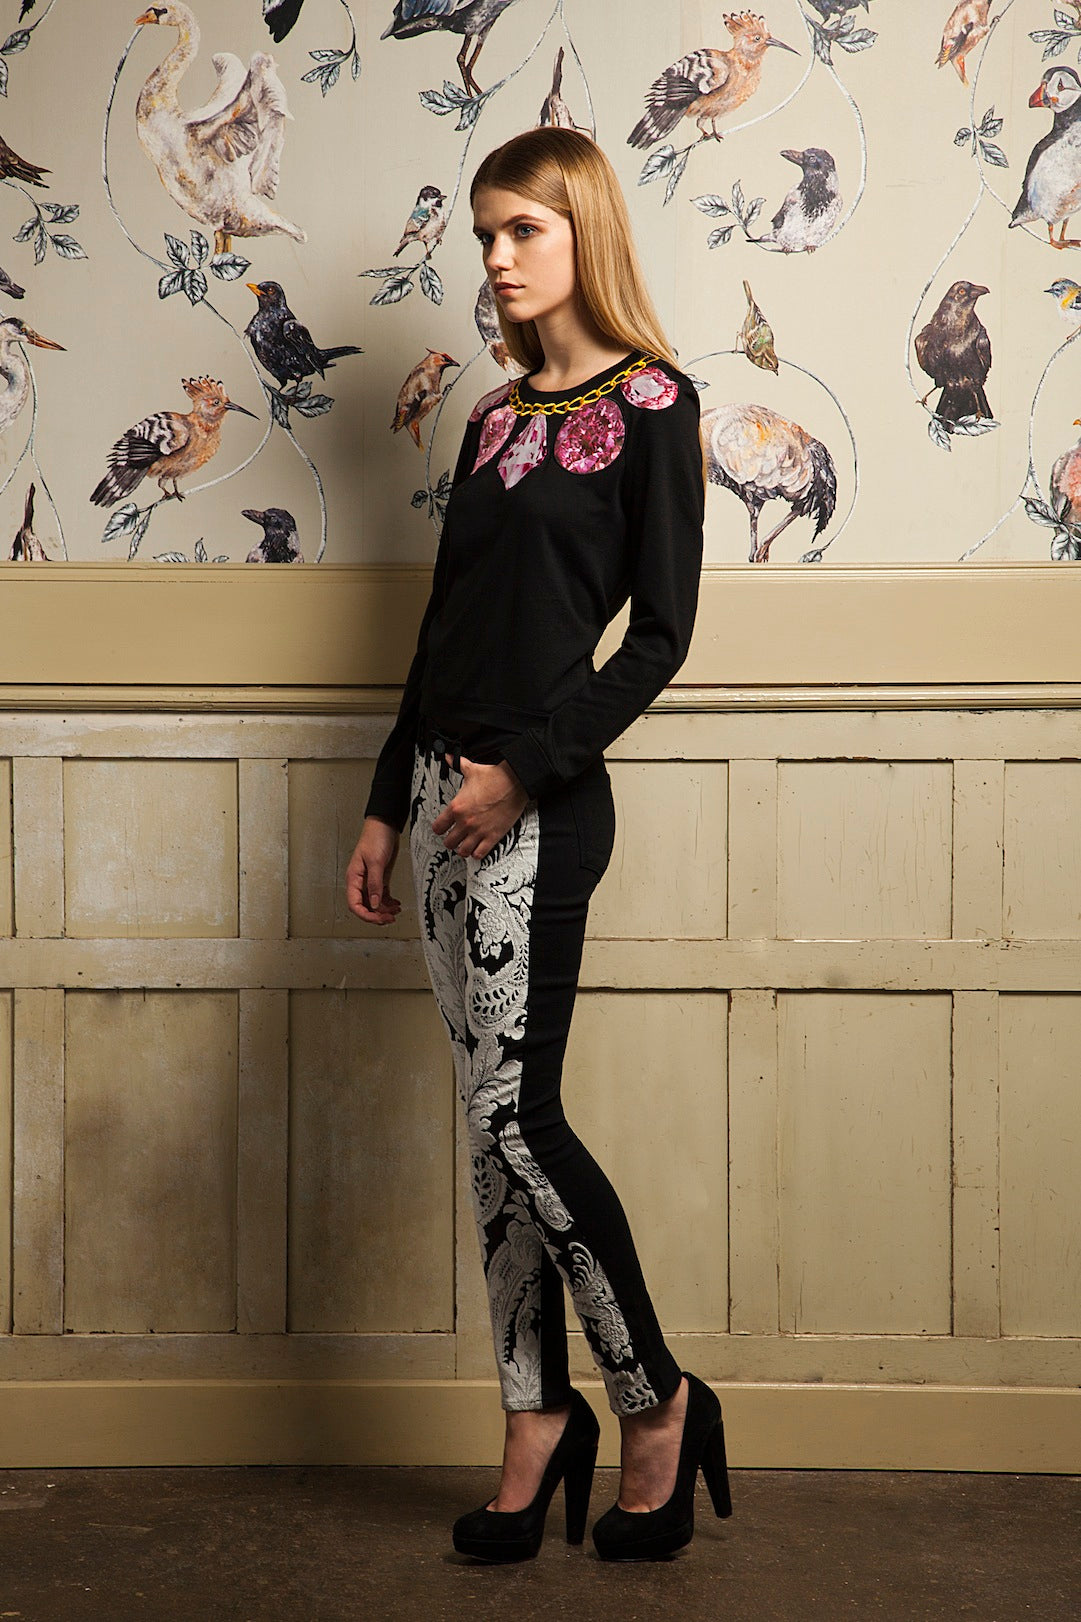 donna ida, london fashion, london style, embelishments, prints, wallpaper, jewels, gold, jumper, jersey, paterened trousers, printed pants, skinny jeans